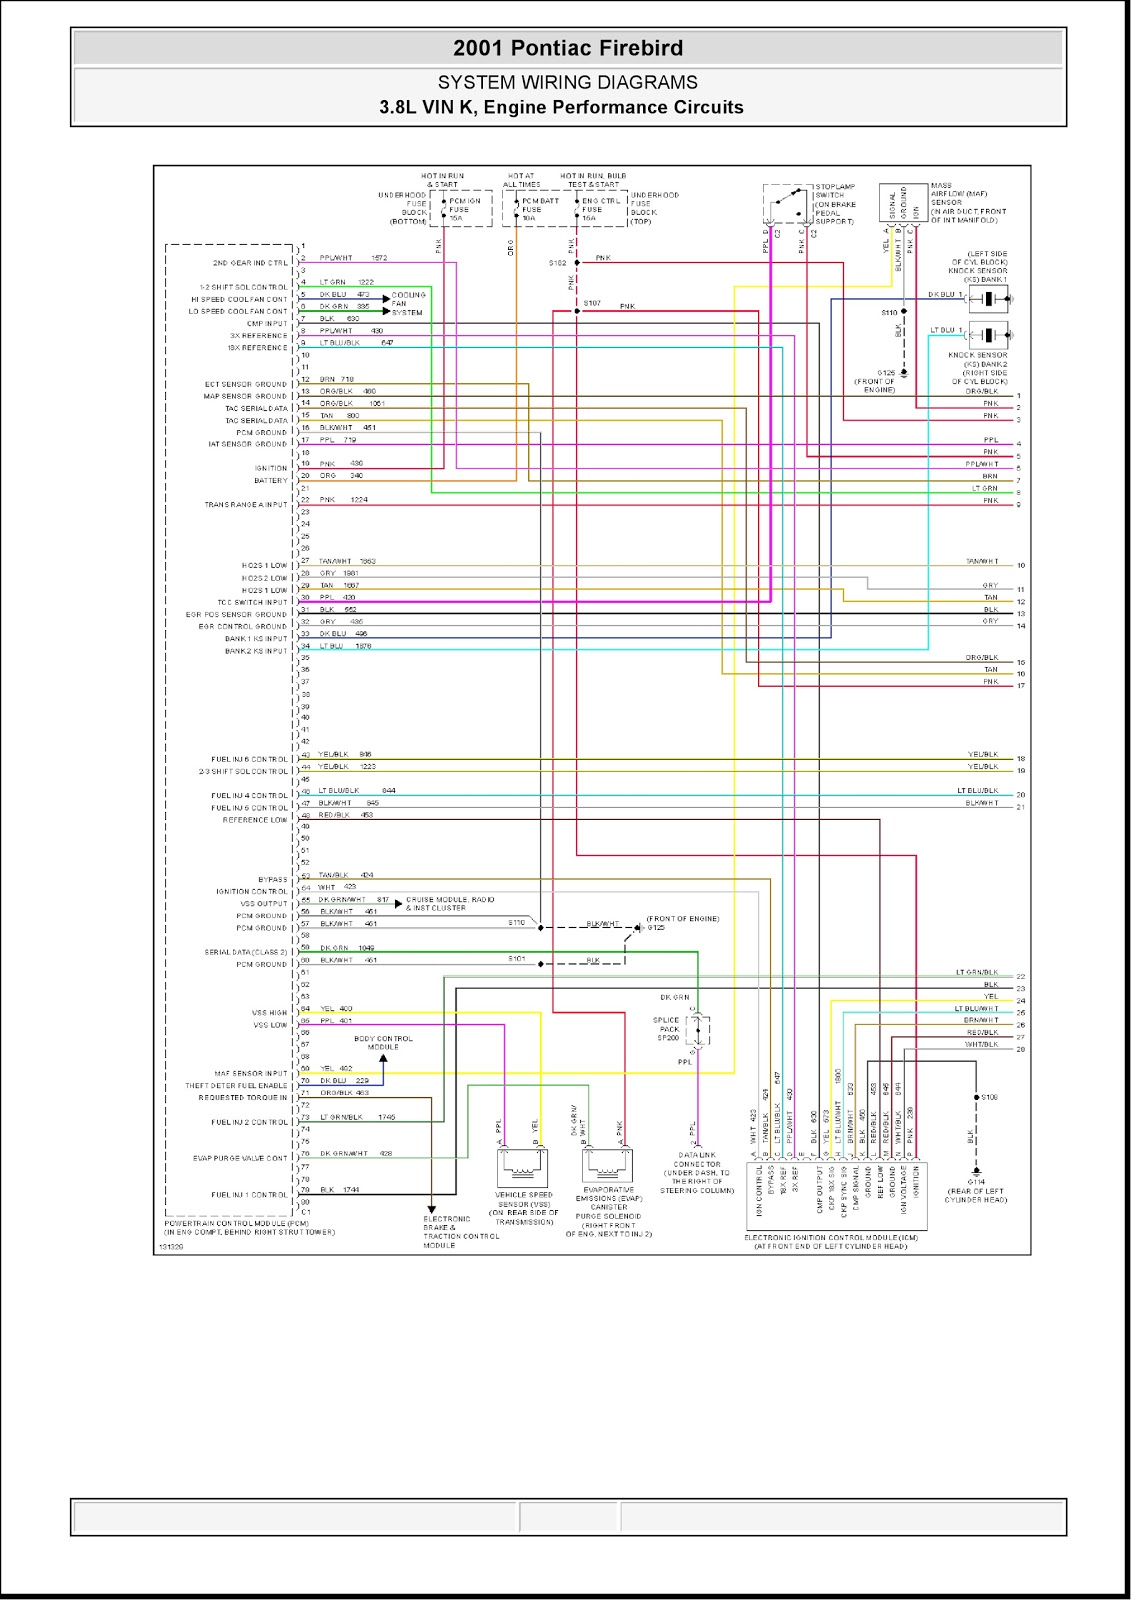 0001 2004 pontiac grand prix wiring diagram efcaviation com 2002 5.4 Wiring Harness Diagram at n-0.co